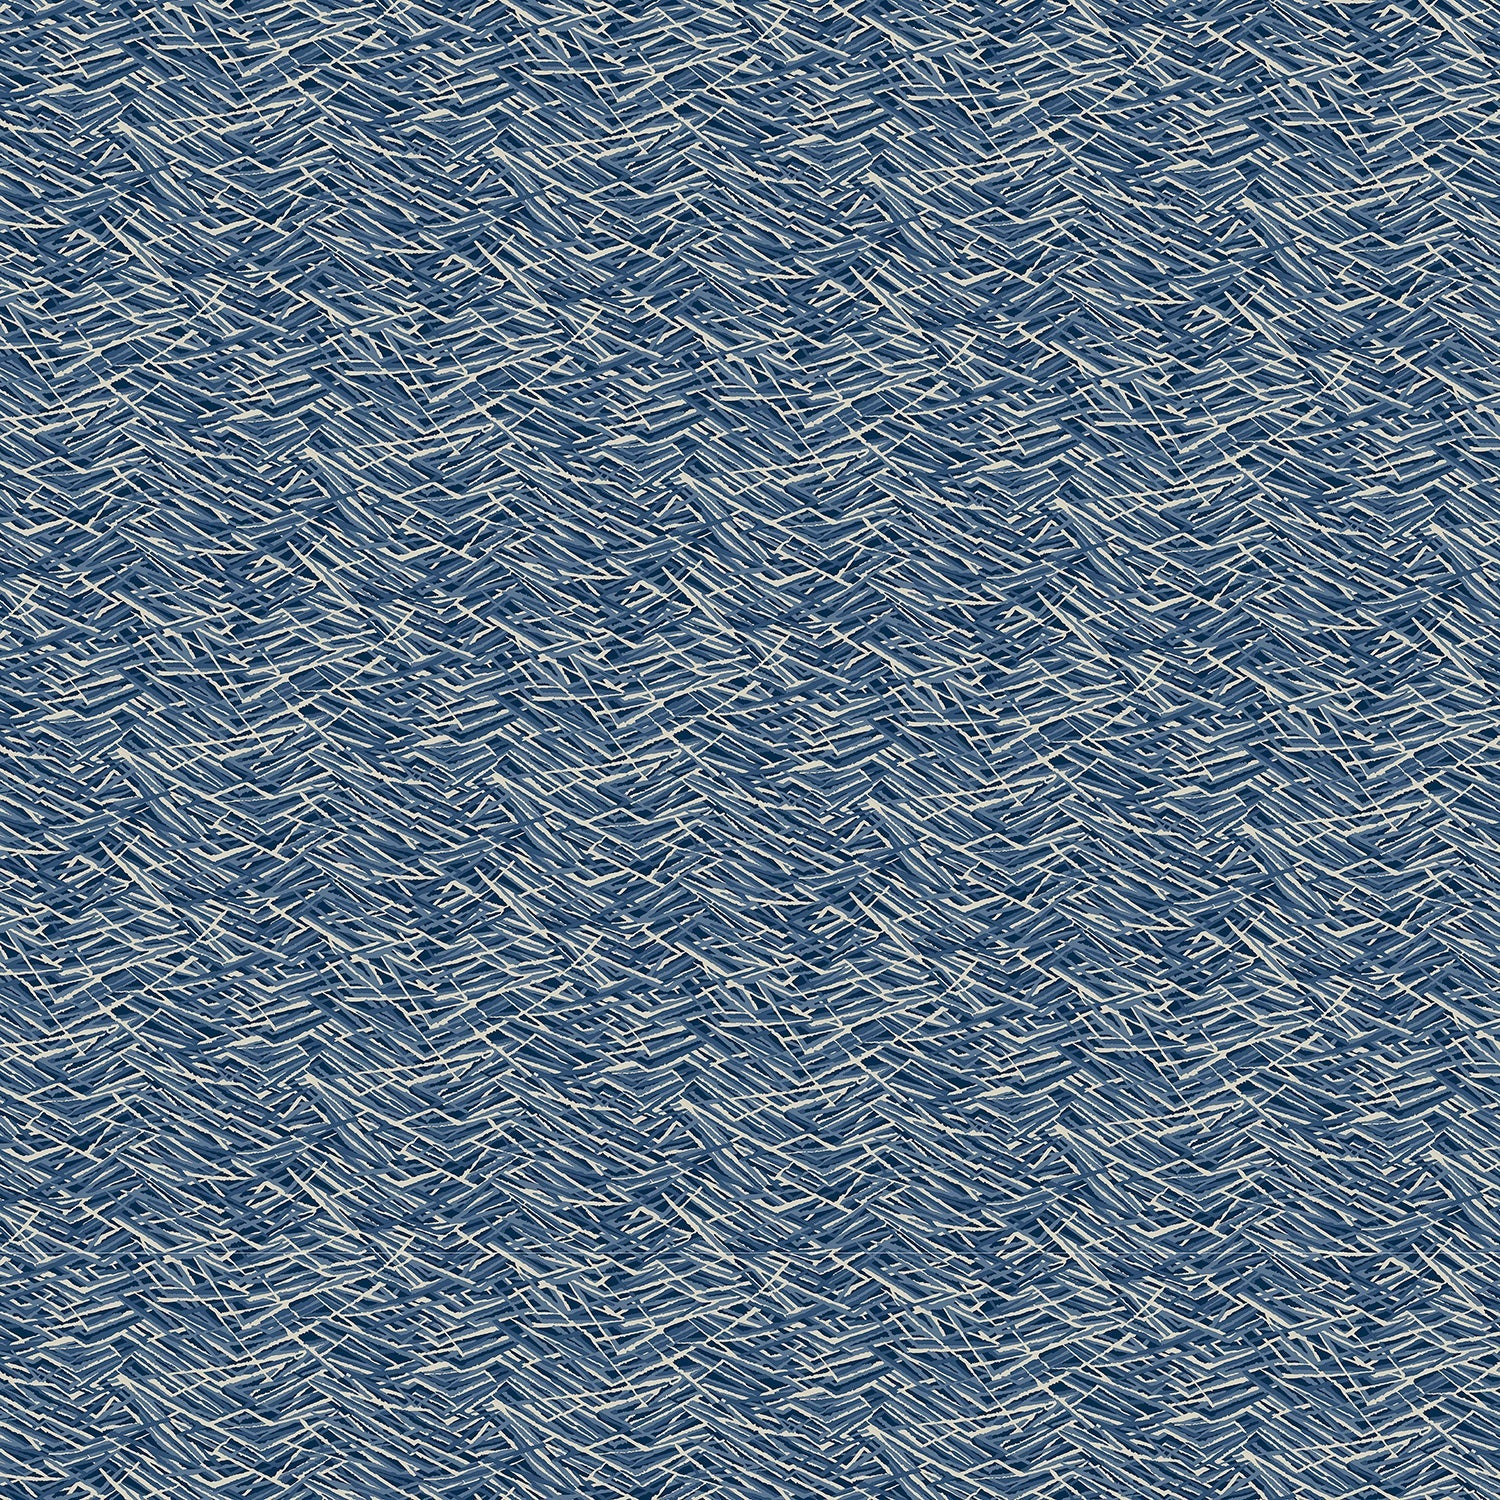 Blue velvet fabric with a modern abstract design and stain resistant finish